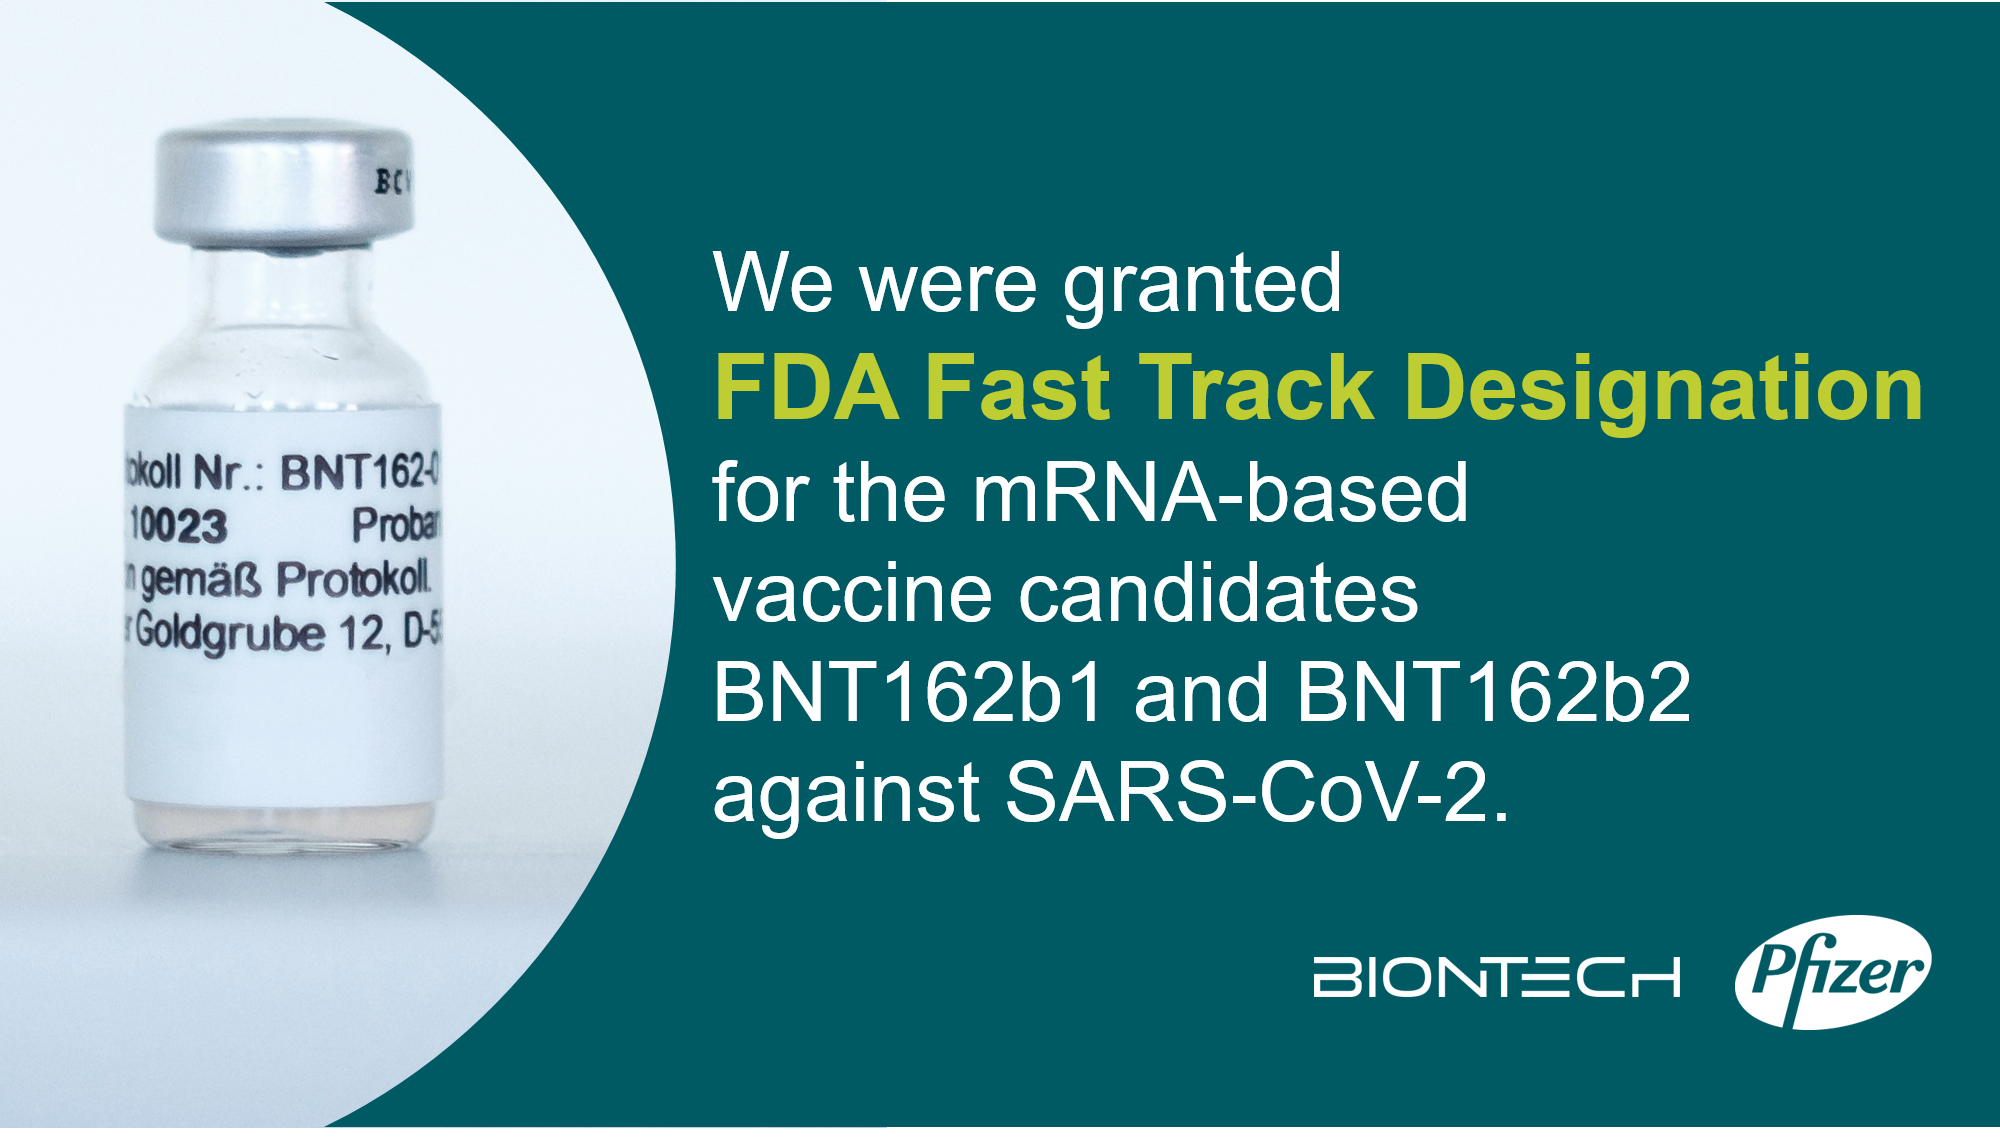 Biontech Se On Twitter We Are Proud To Have Received Fast Track Designation From The U S Fda For Two Of Our Four Investigational Vaccine Candidates From The Bnt162 Mrna Based Vaccine Program They